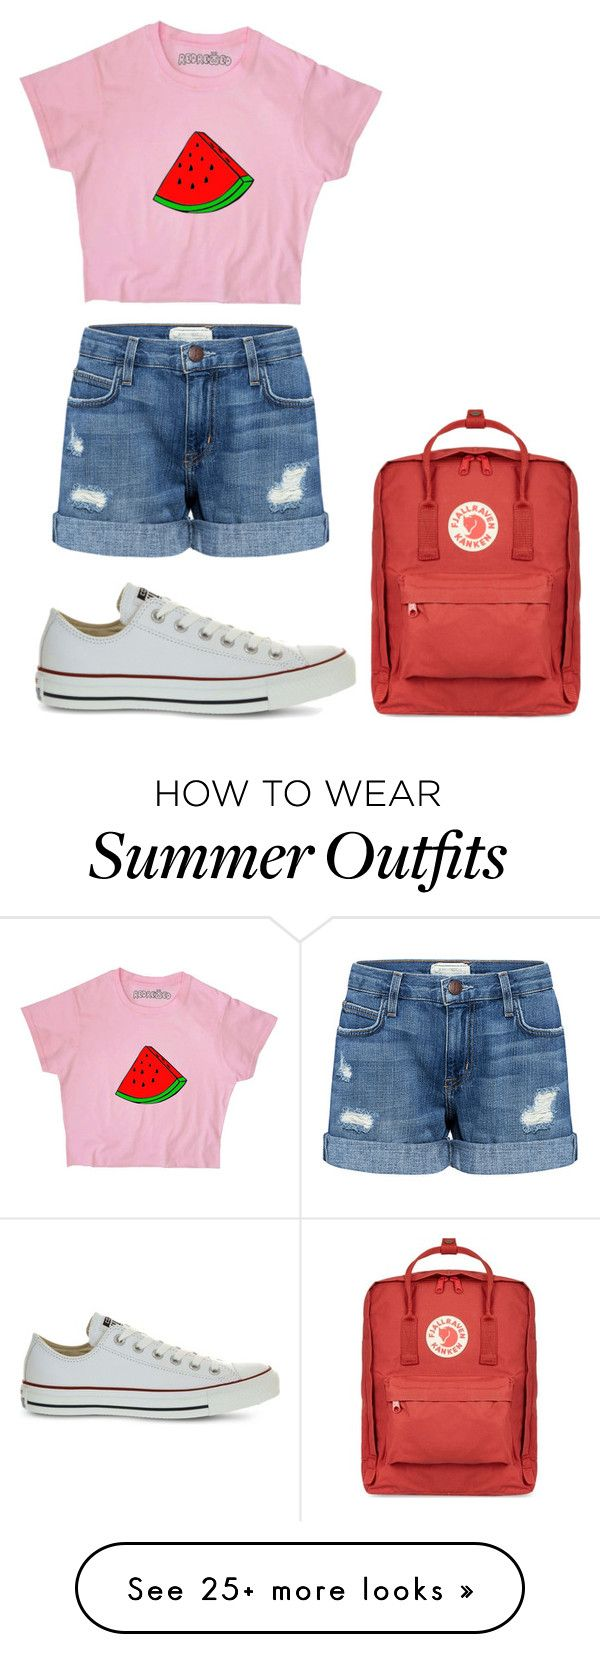 """""""Outfit"""" by thebandgirl on Polyvore featuring Current/Elliott, Converse and Fjällräven"""